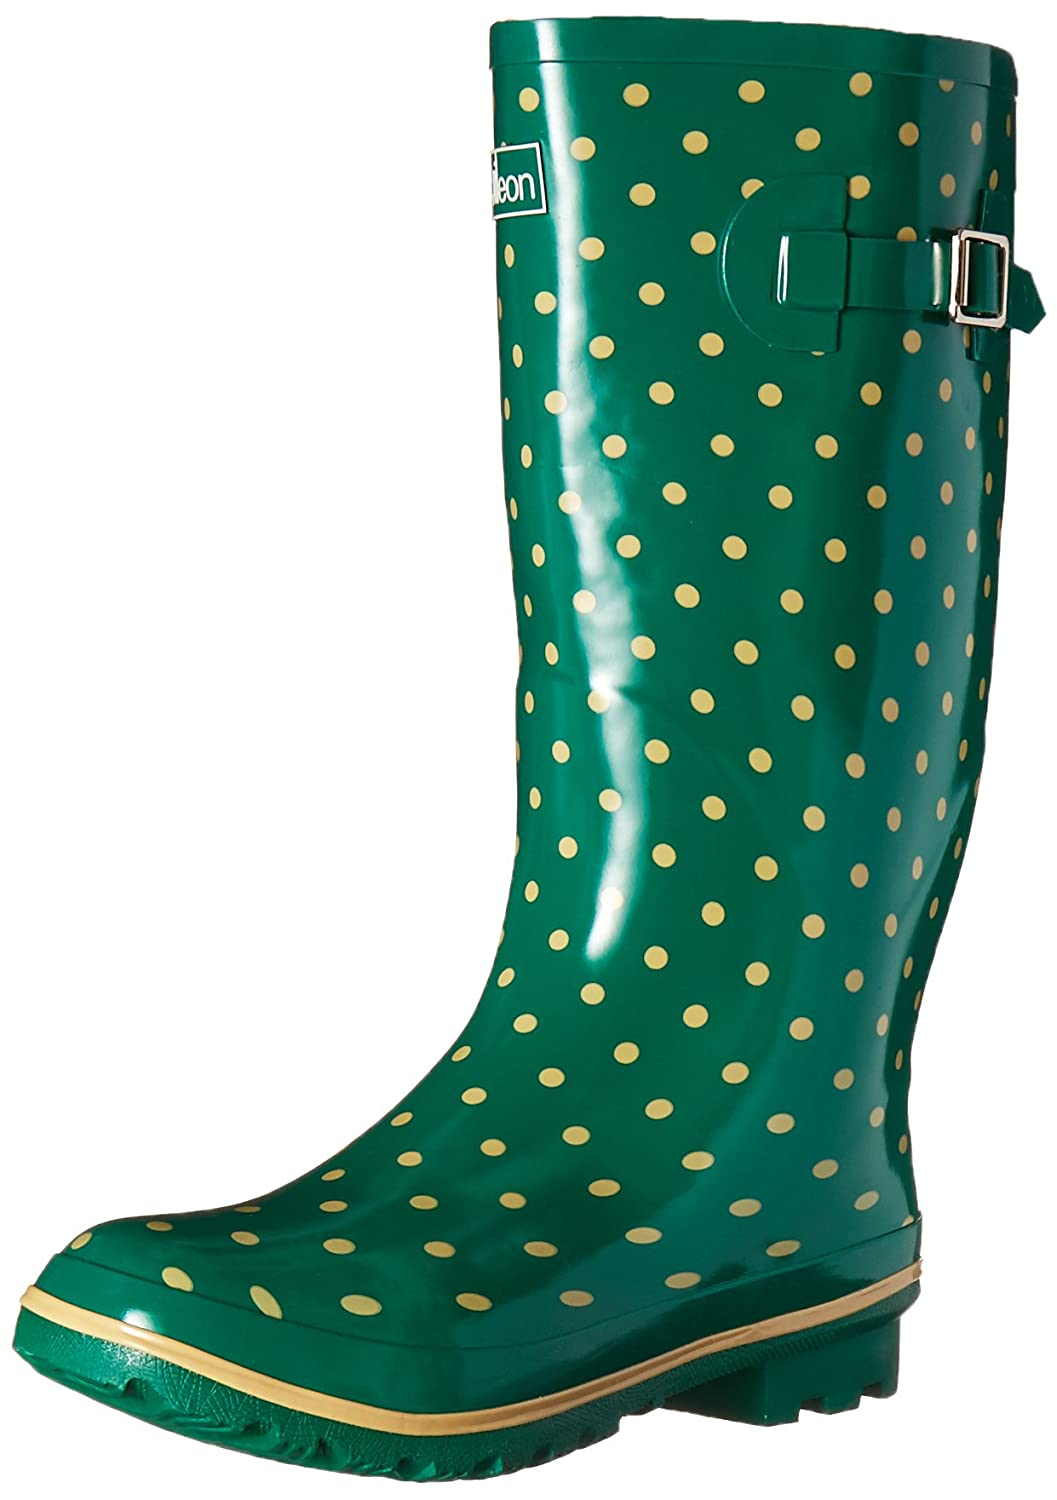 Wide Calf Rain Boots - up to 18 inch calf - Green with Cream Spots and Fleece Lining